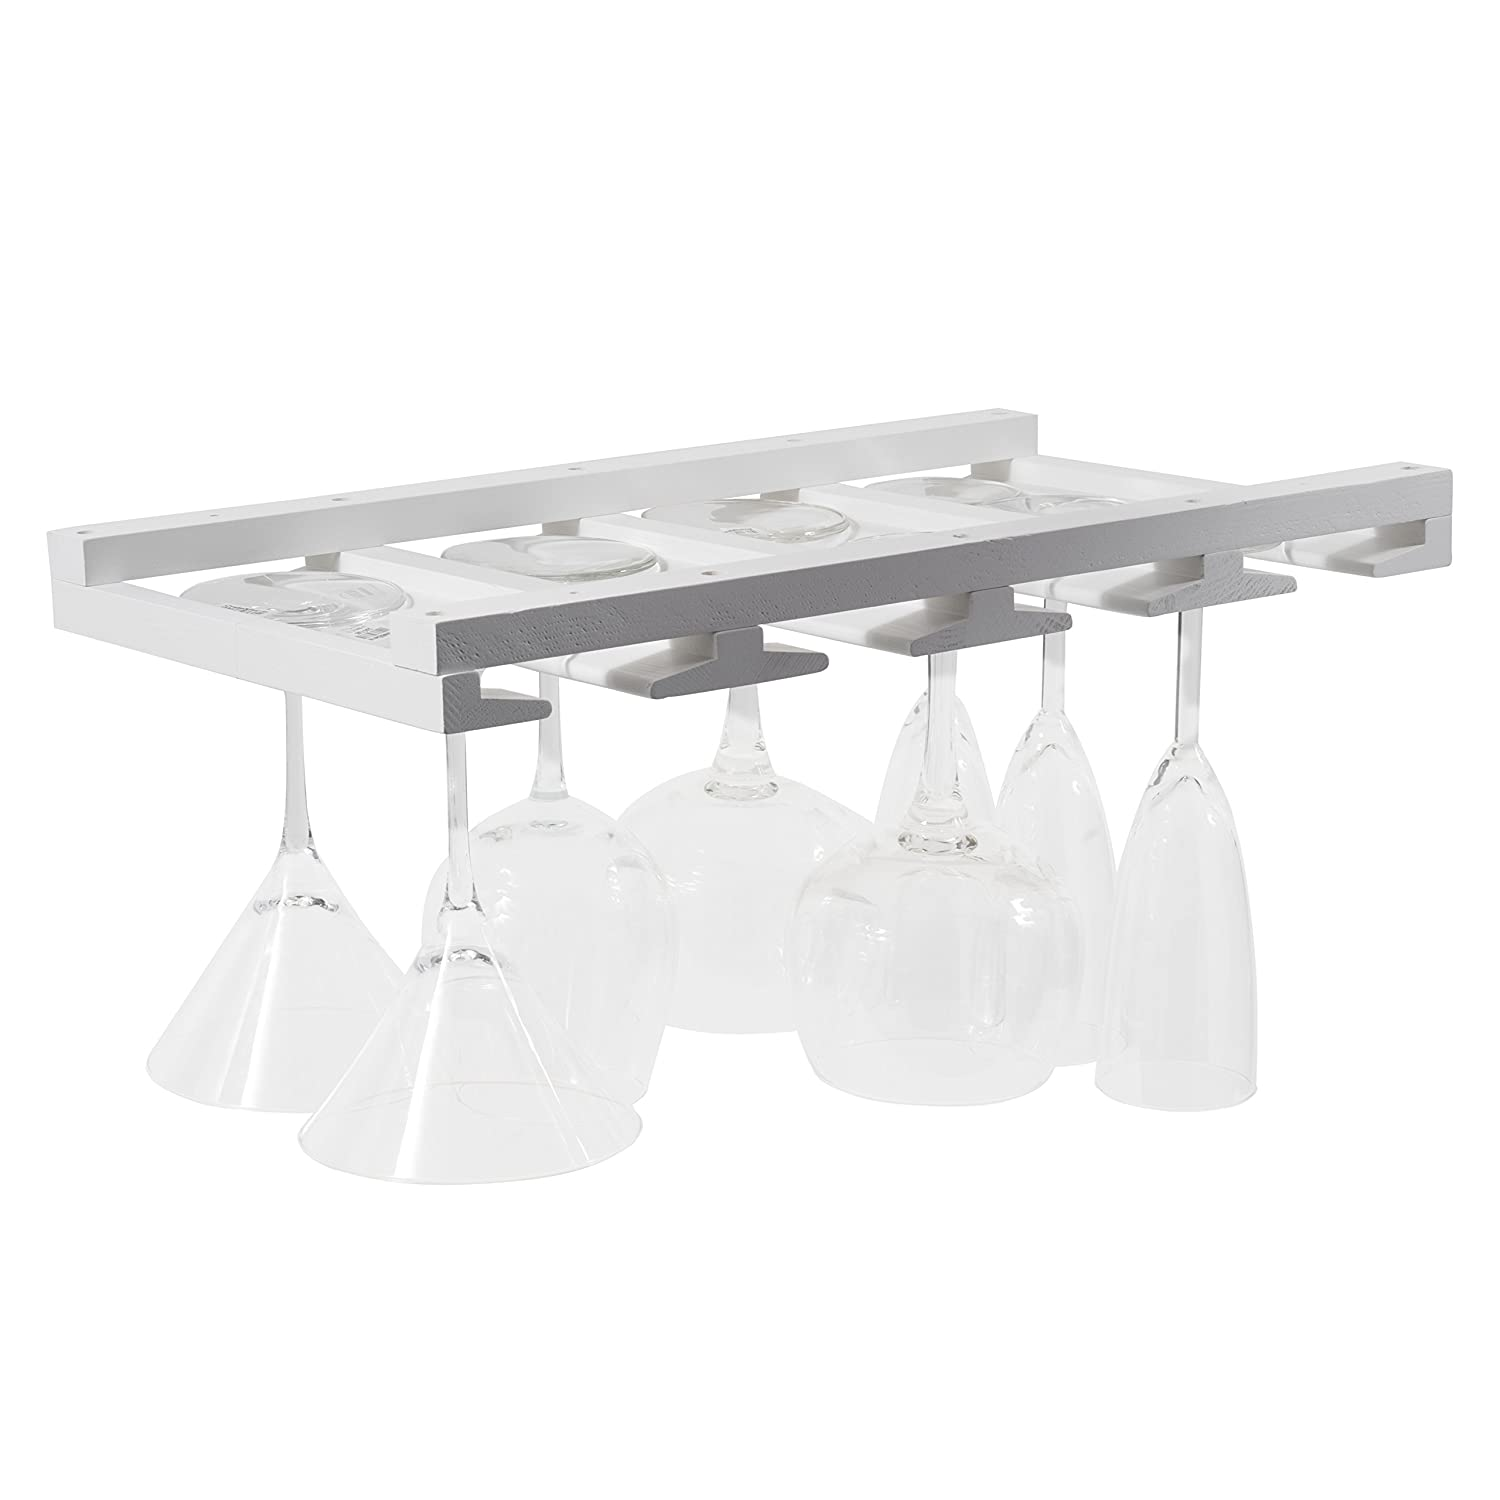 Rustic State Wine Glass Rack Makes Dull Kitchens or Bar Looks Great Perfectly Fits 6-12 Glasses Under Cabinet Easy to Install with Included Screws Great Hanging Bar Glass Rack (White)